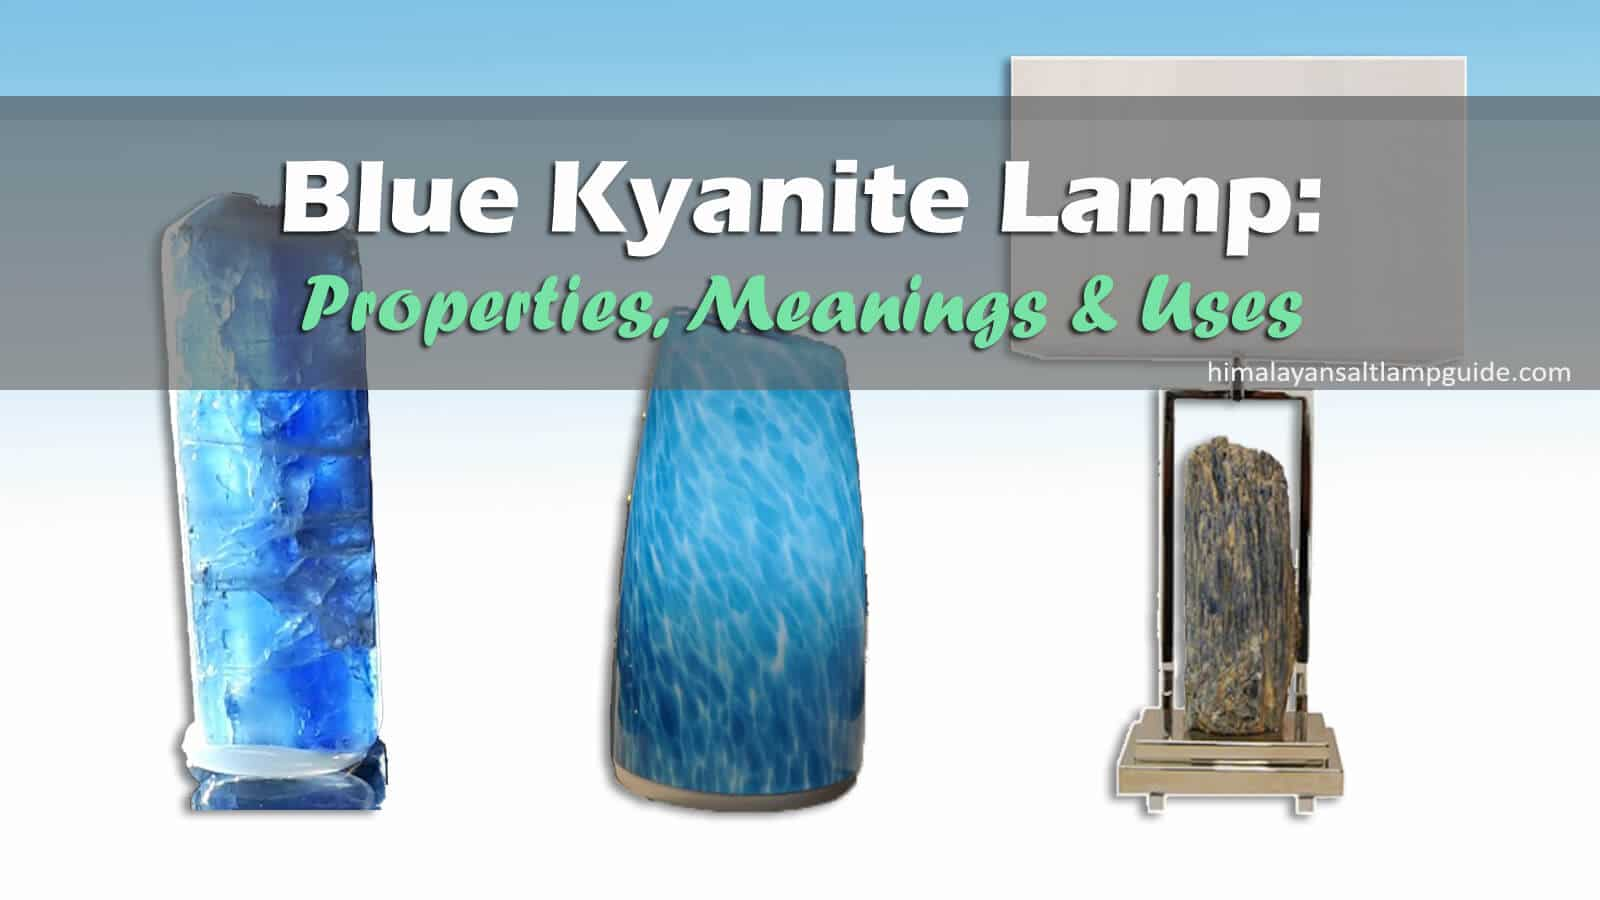 Blue Kyanite meaning and healing properties